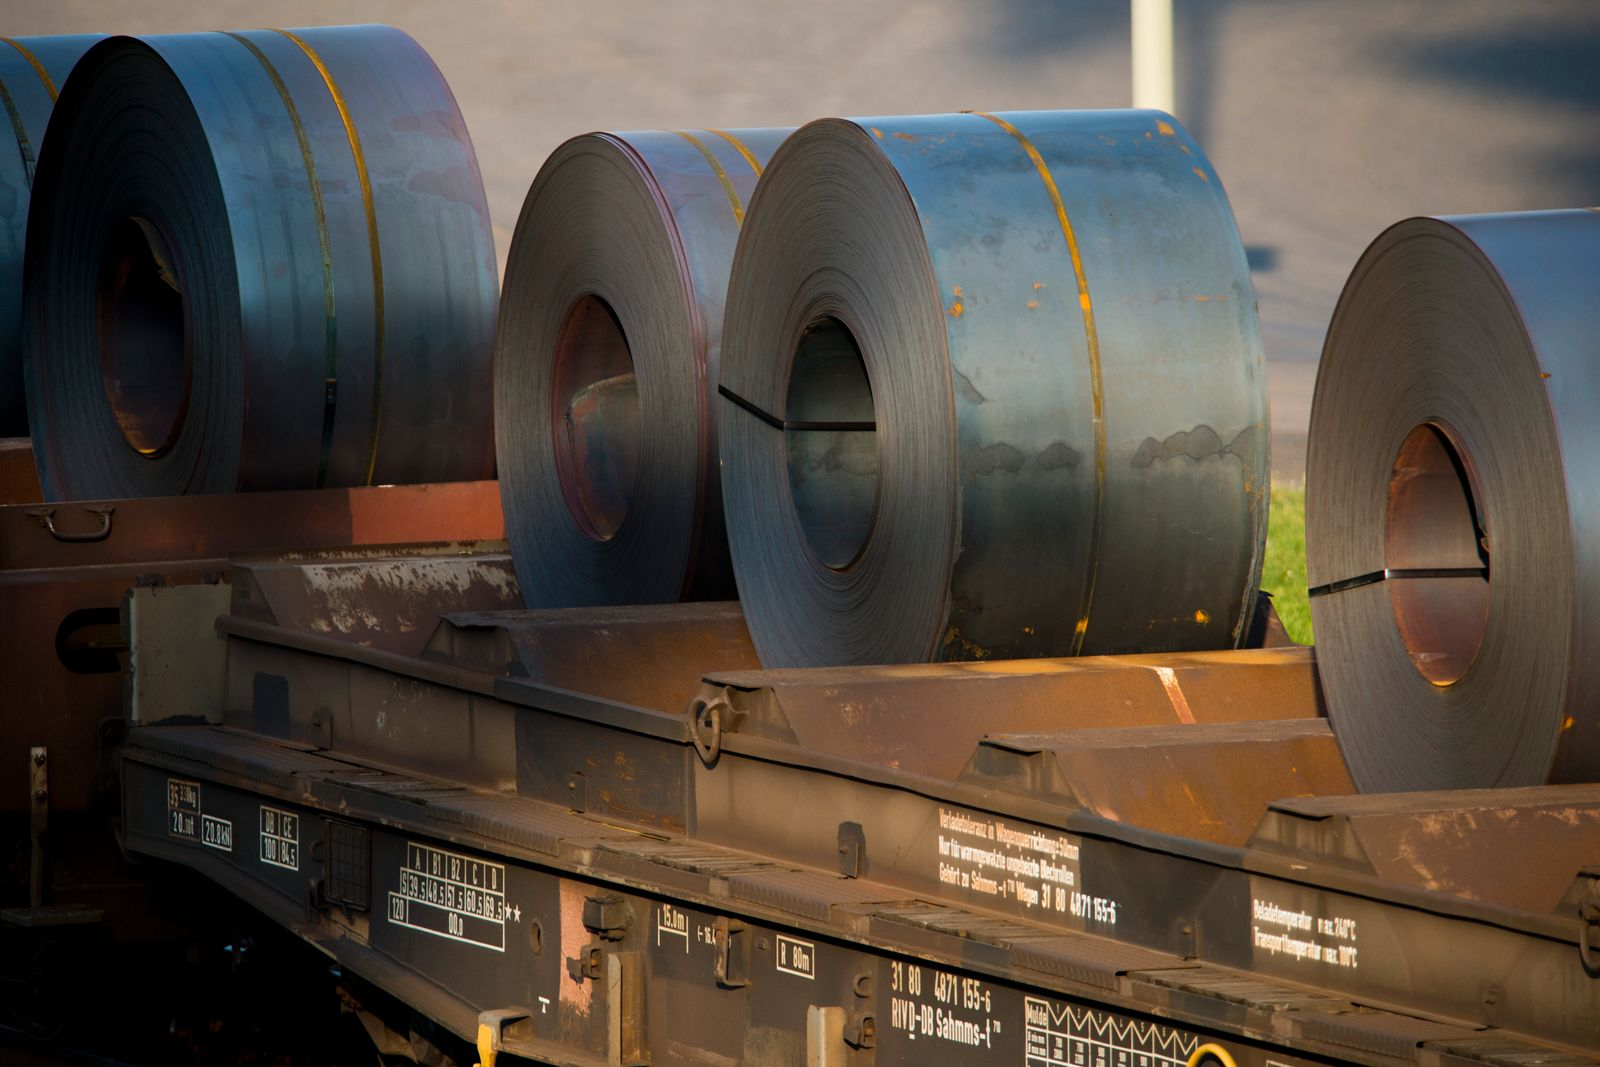 US To Likely Impose Steel And Aluminum Import Restrictions Against EU